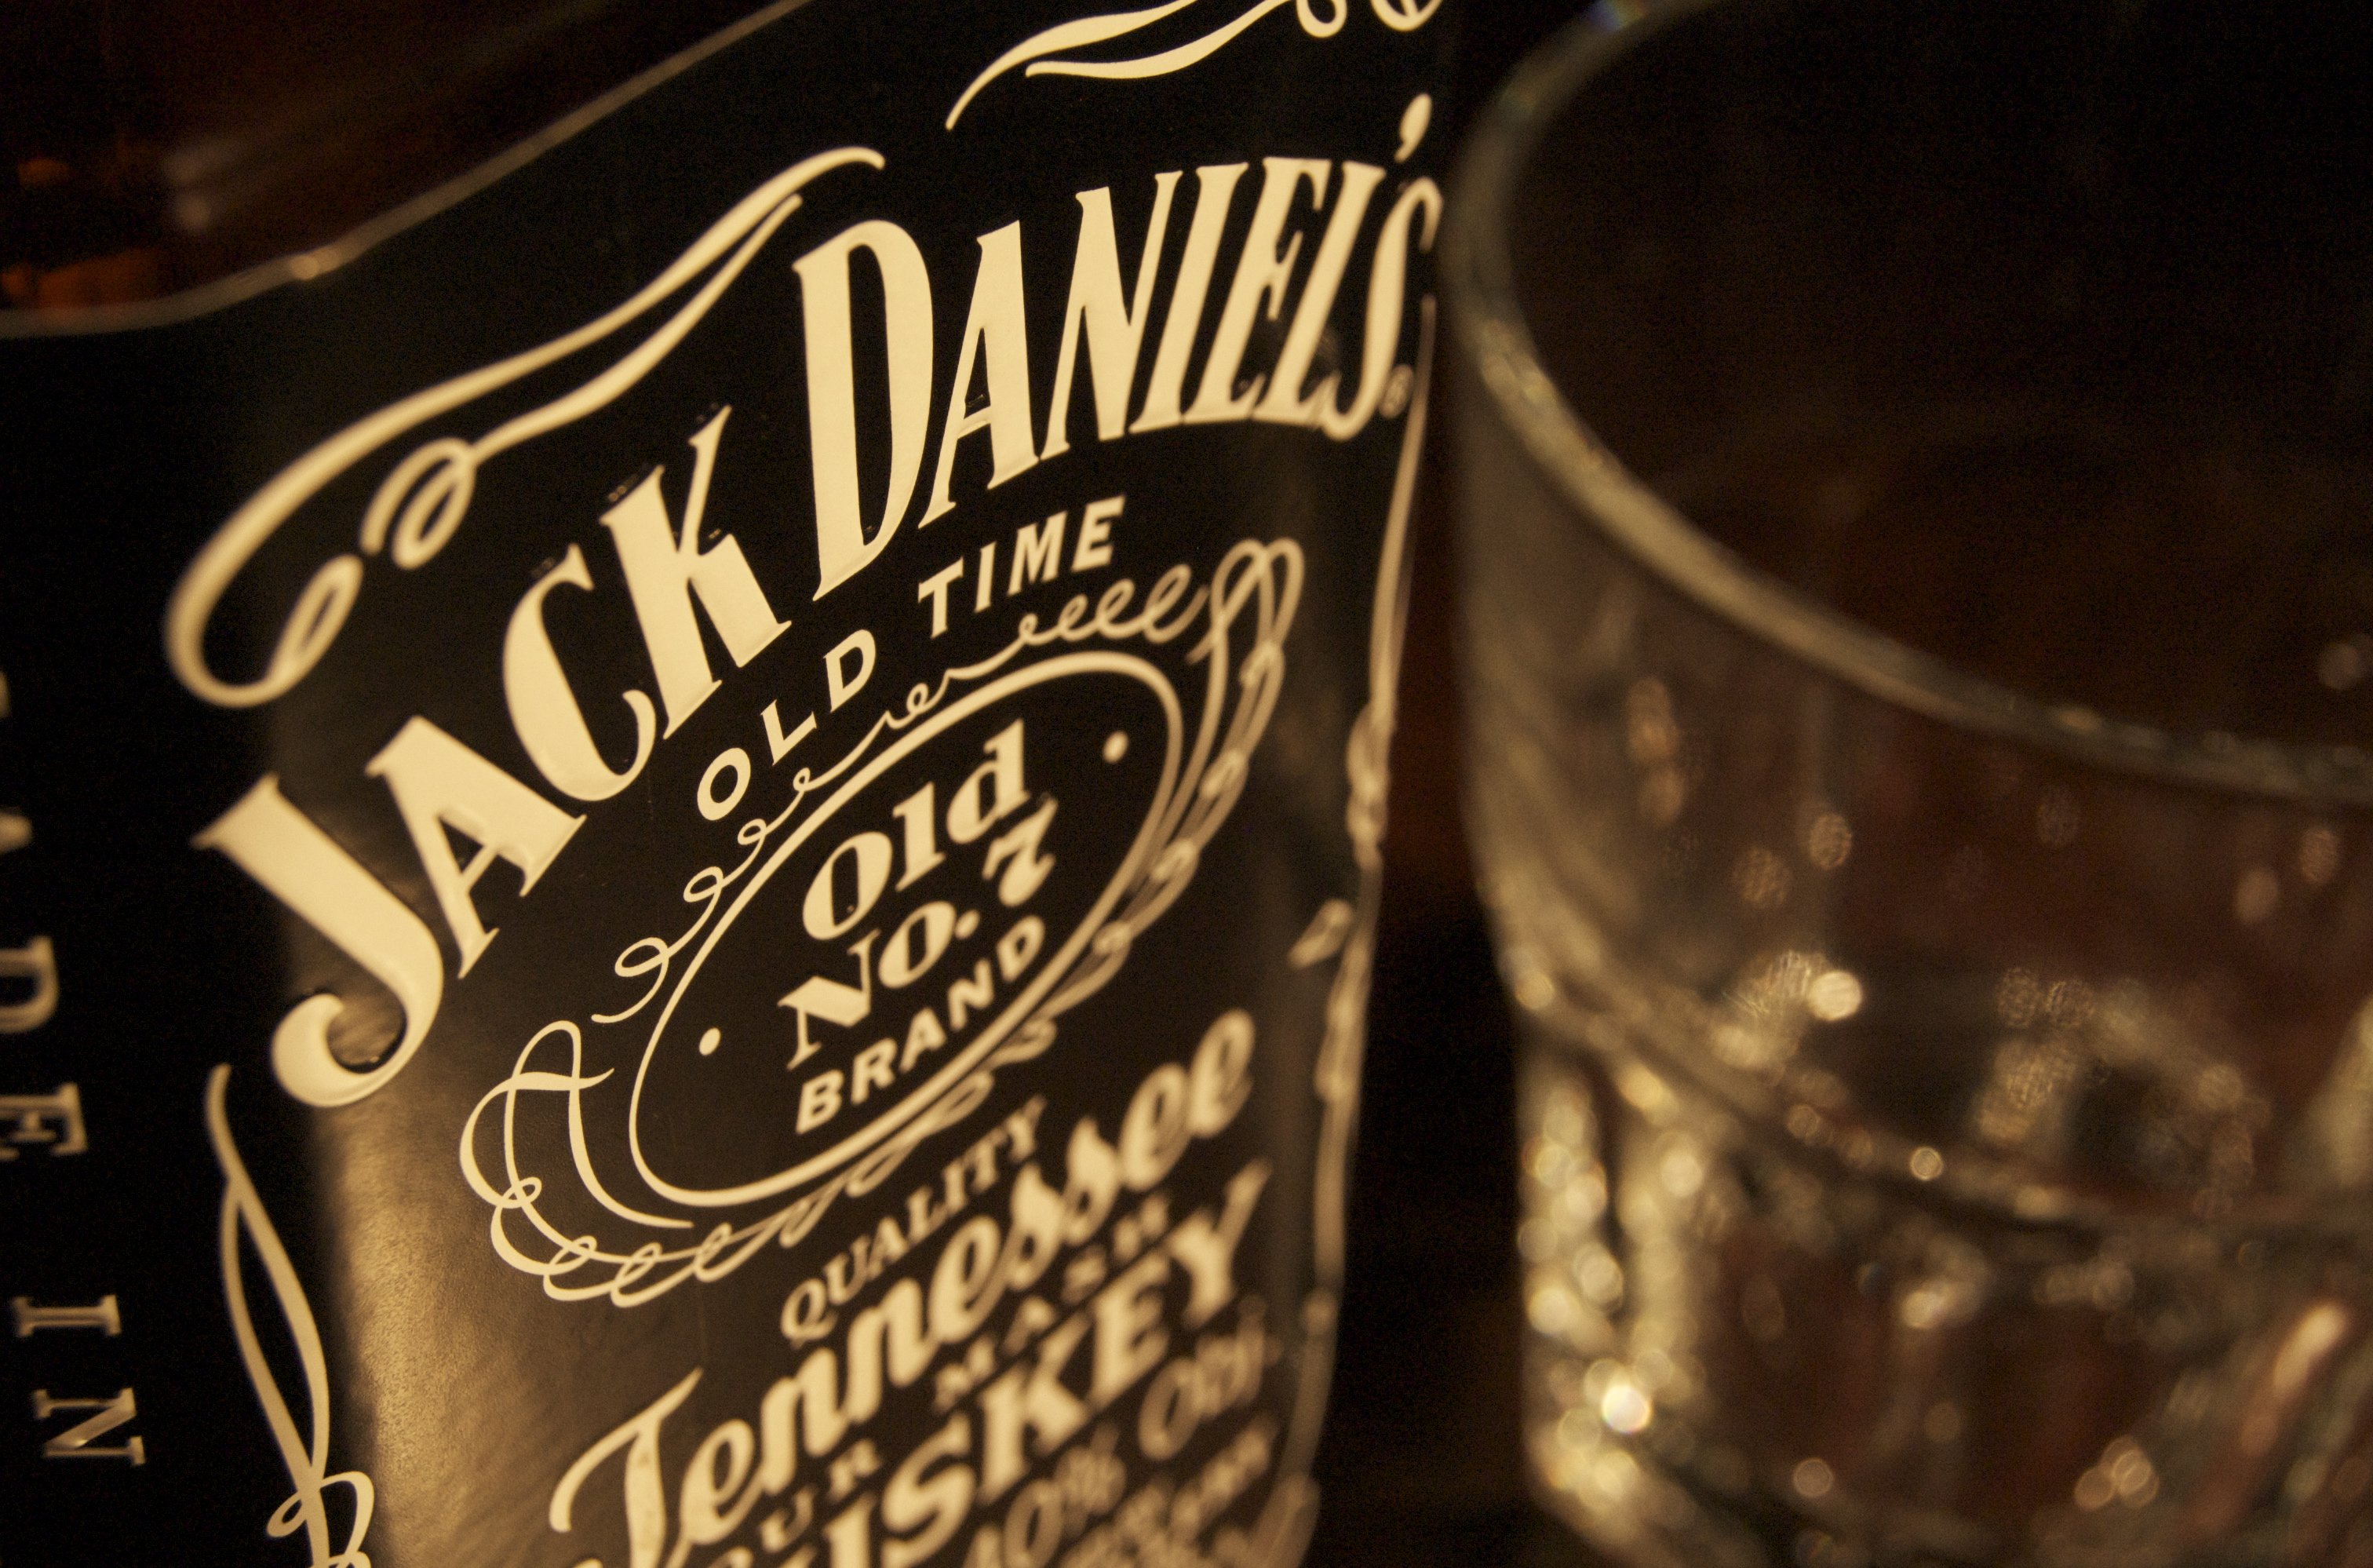 Jack daniels wallpapers high quality download free voltagebd Gallery